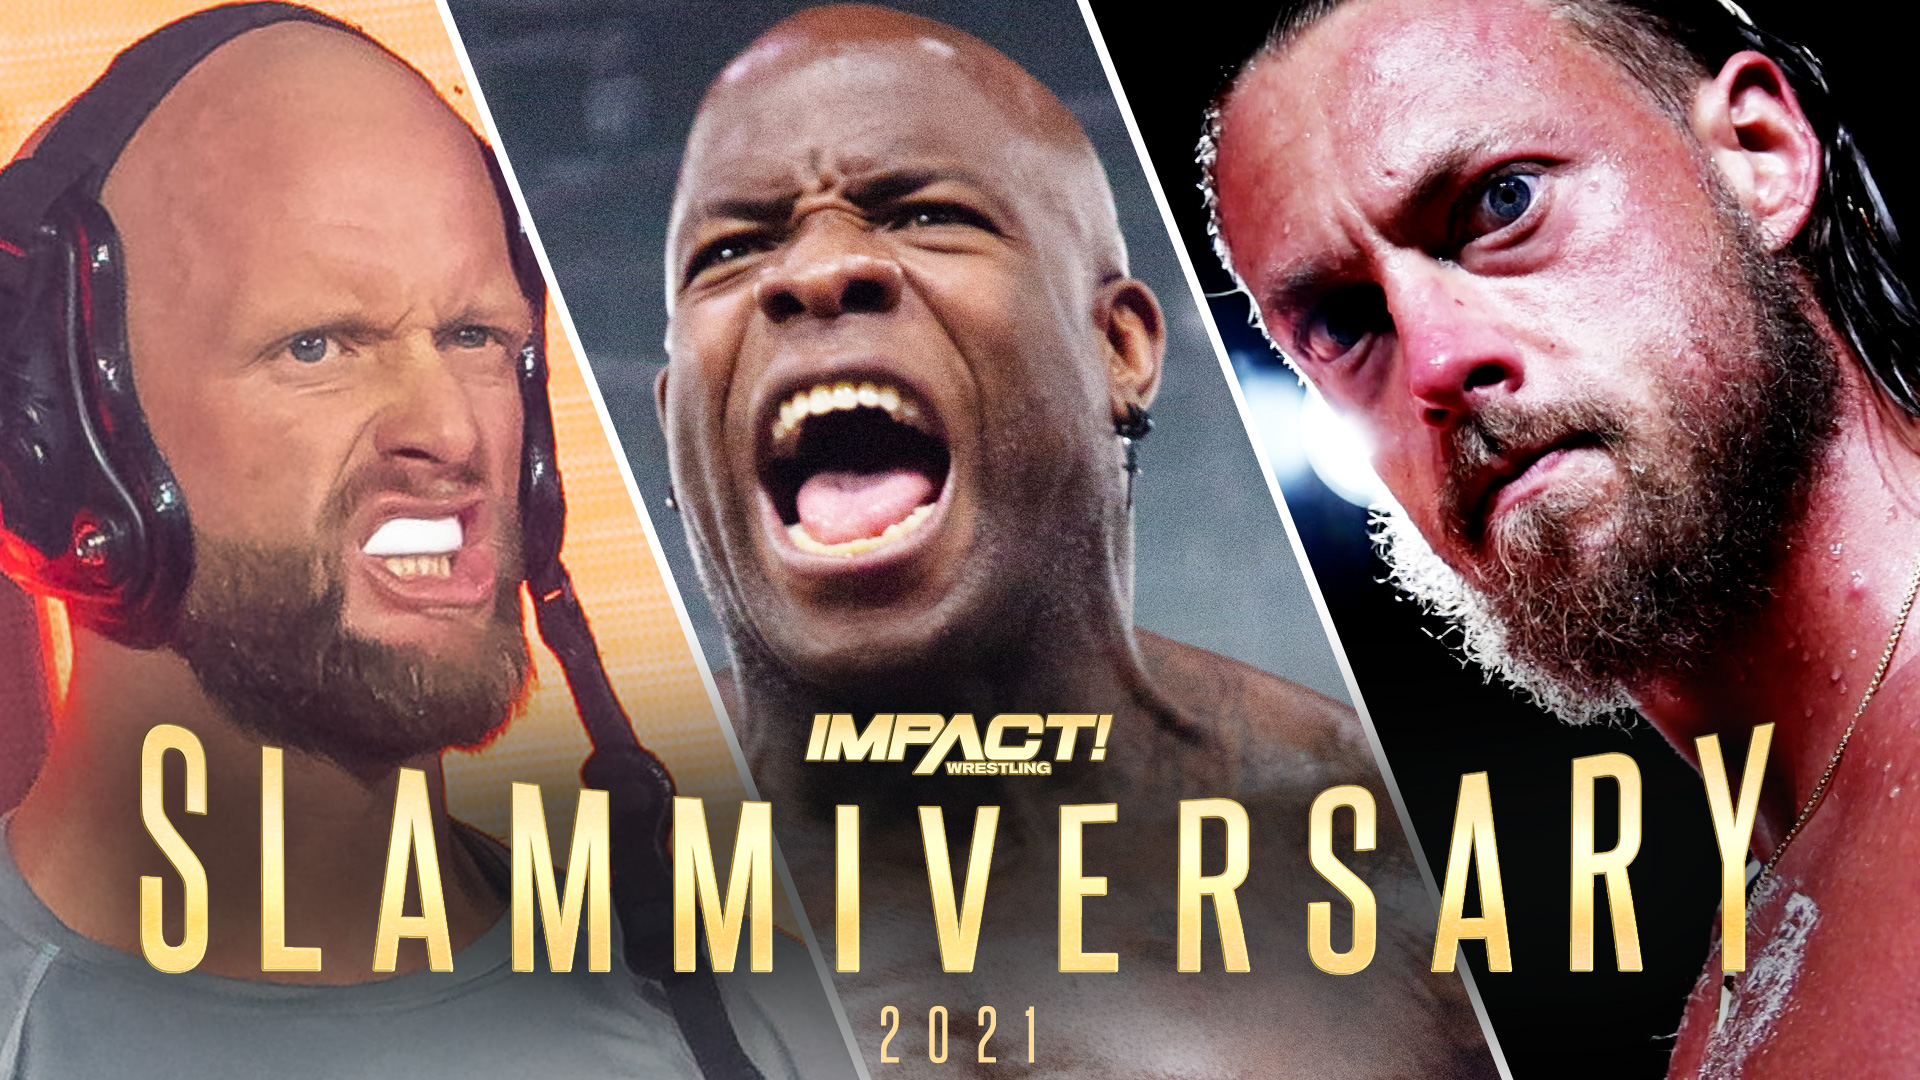 Ultimate X Returns, Moose & Sabin Collide, W. Morrissey Out To Dominate at Slammiversary – IMPACT Wrestling